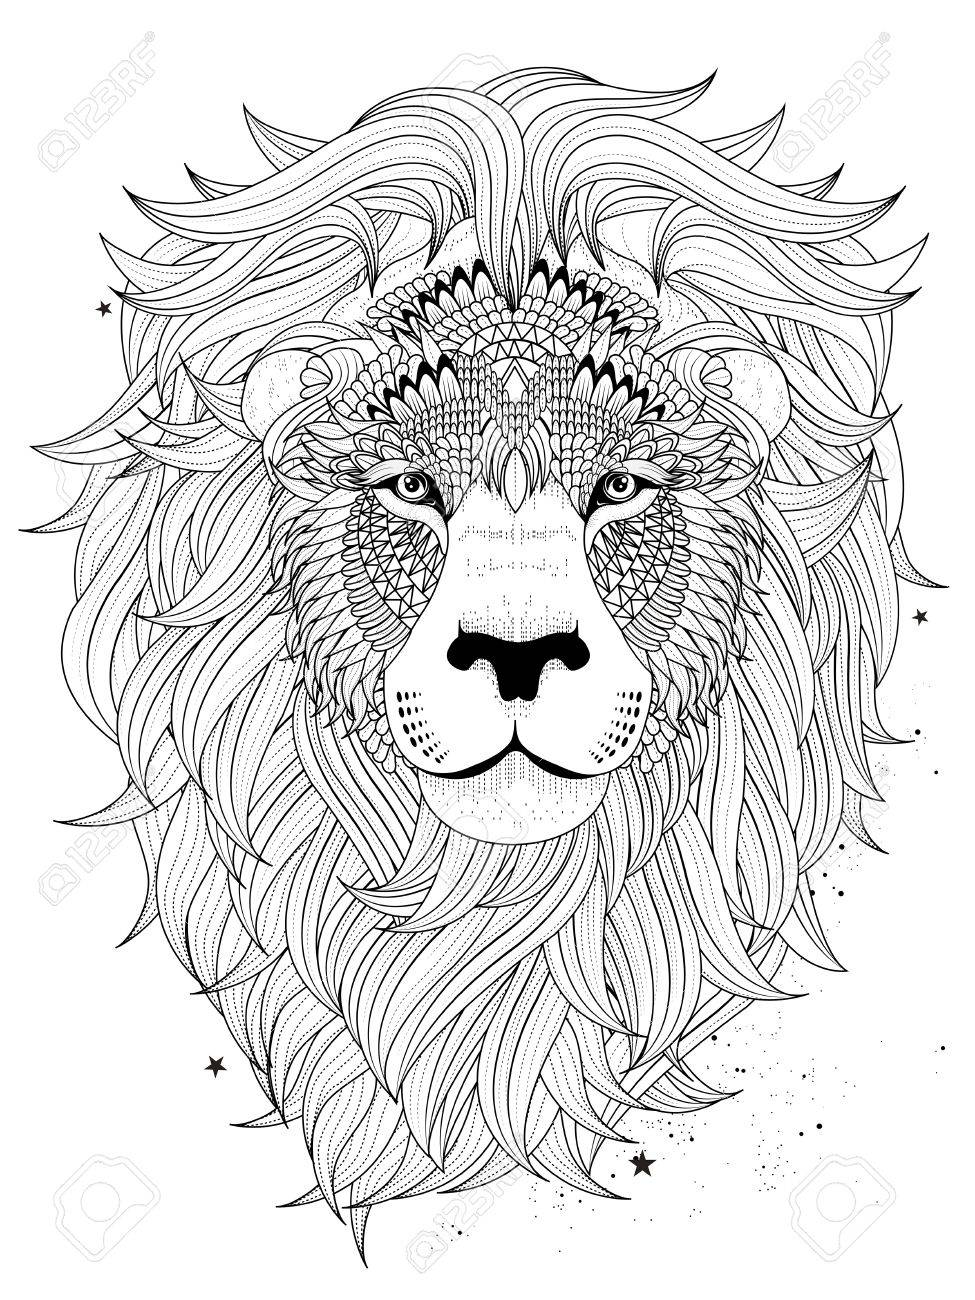 Attractive fluffy lion head adult coloring page stock vector 54051569